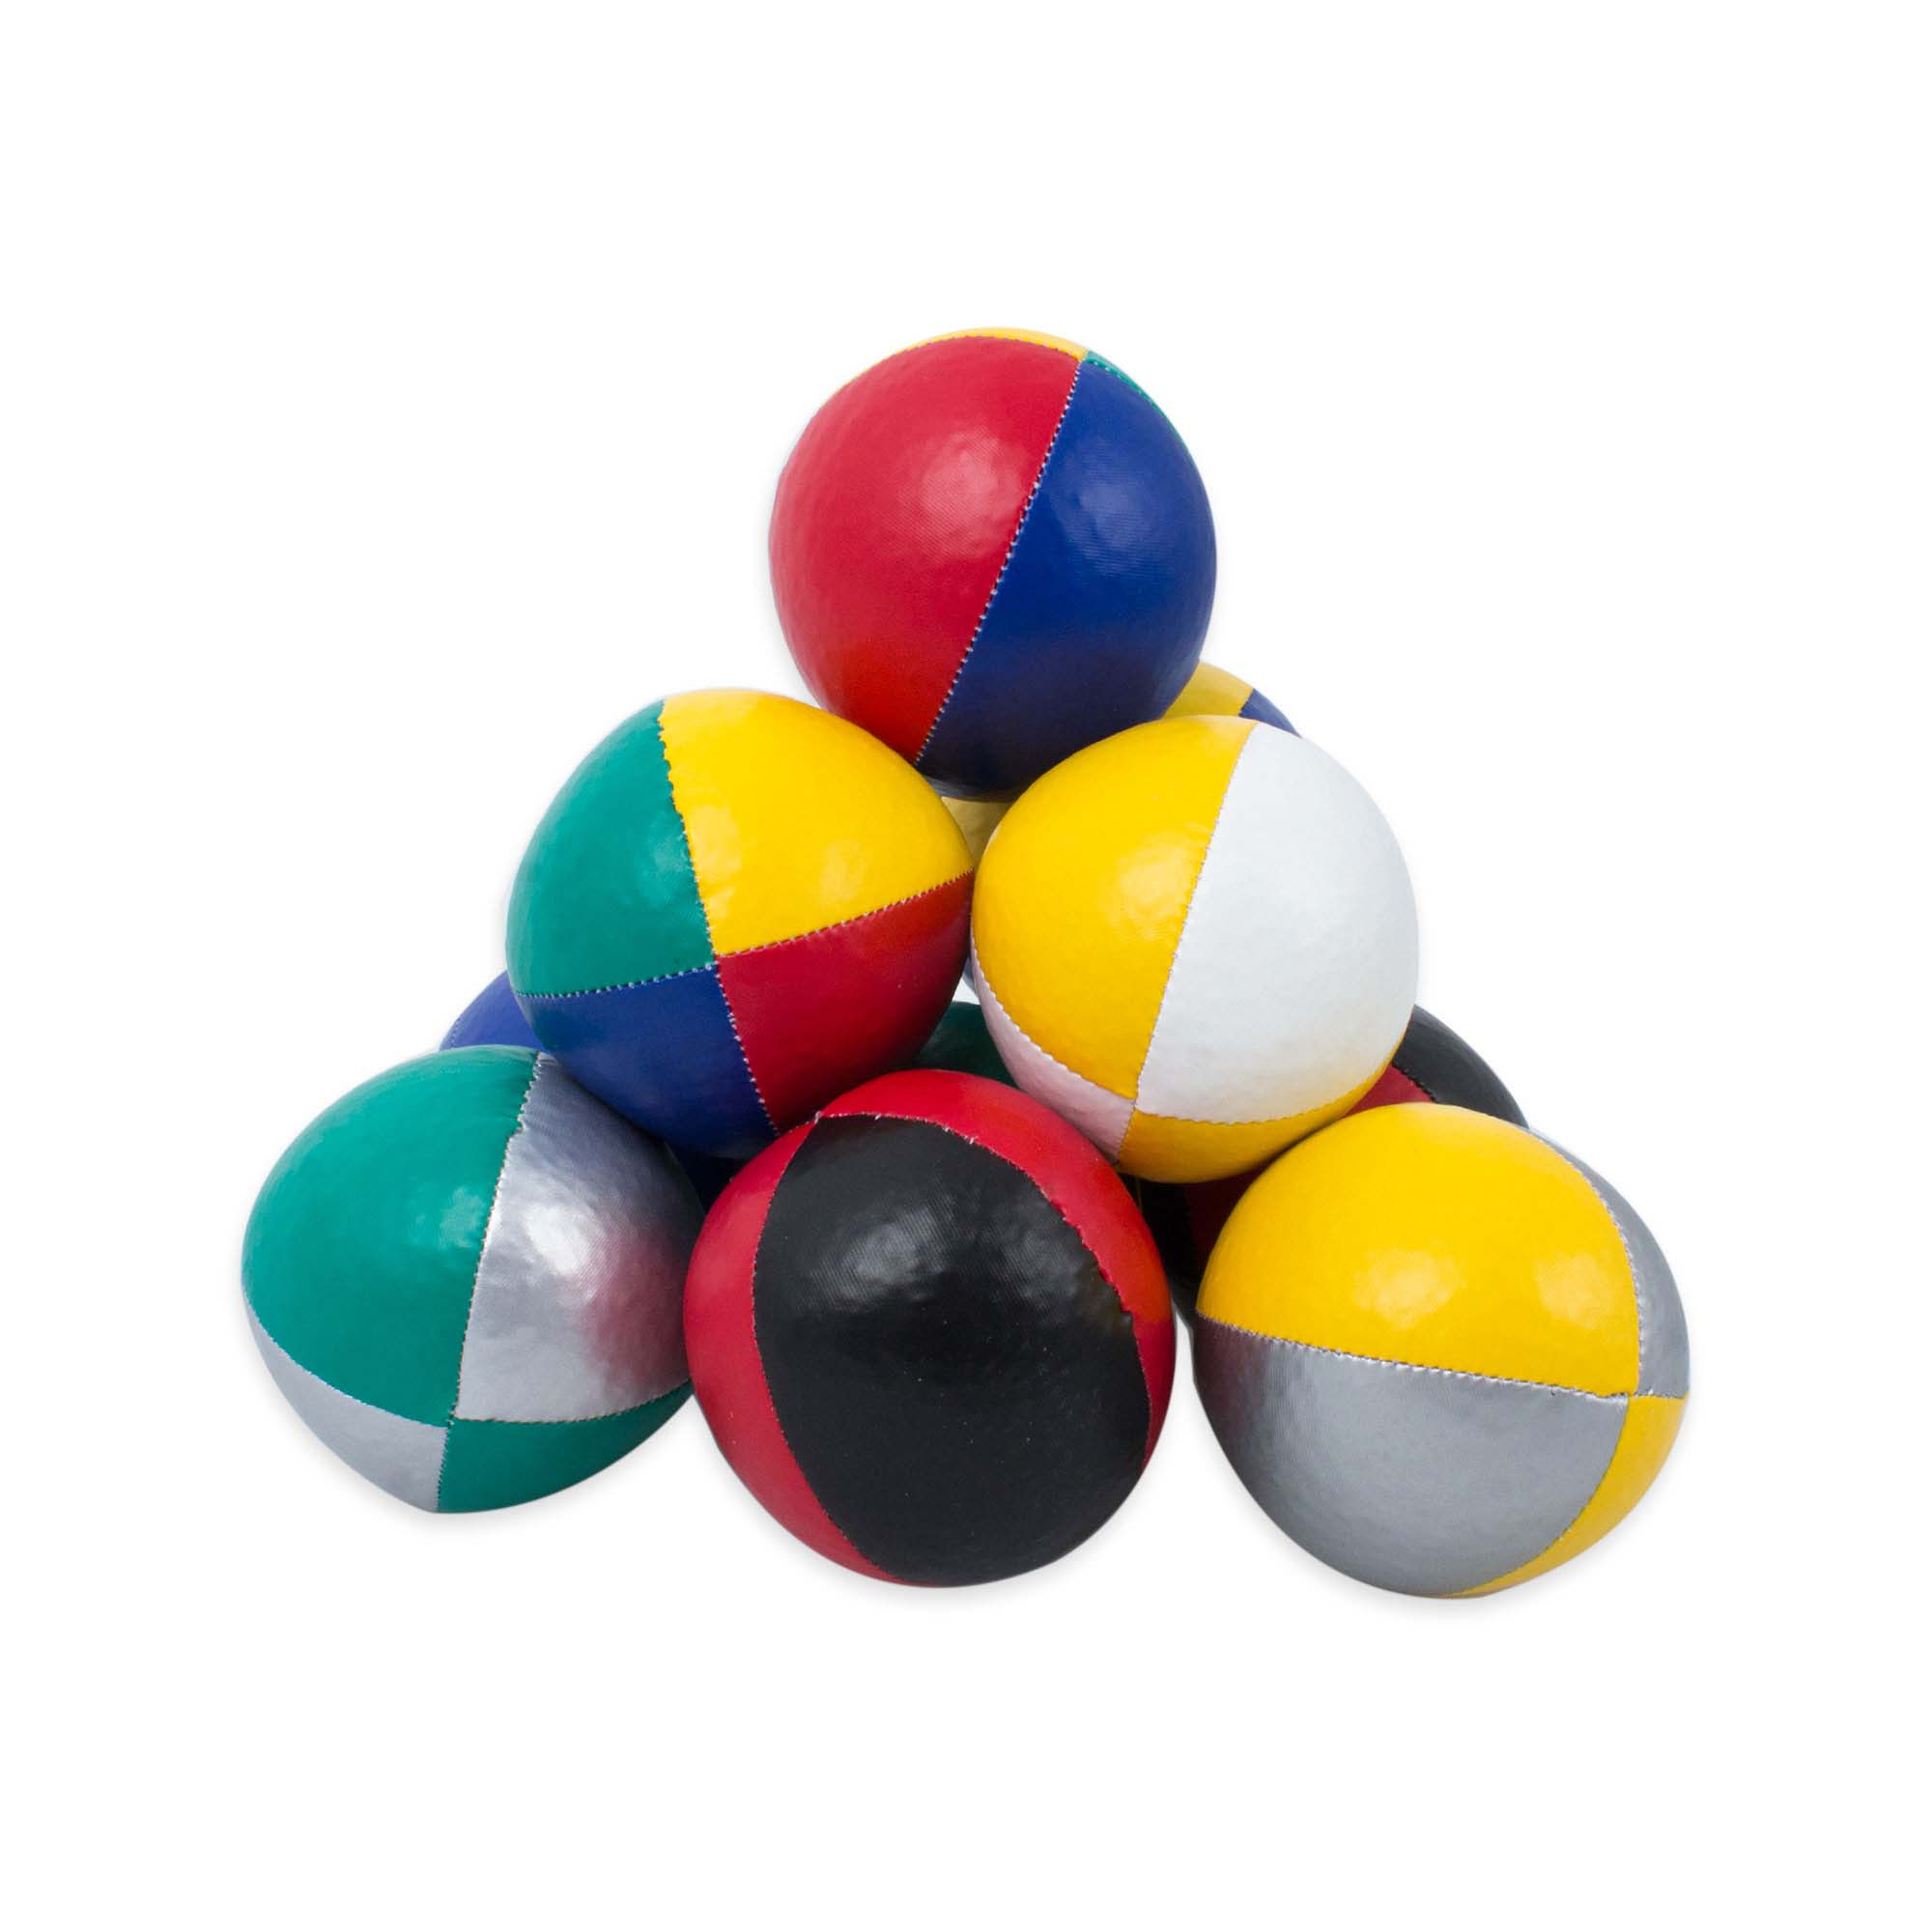 120g-thud-juggling-balls-_the-standard-ball_menu_1